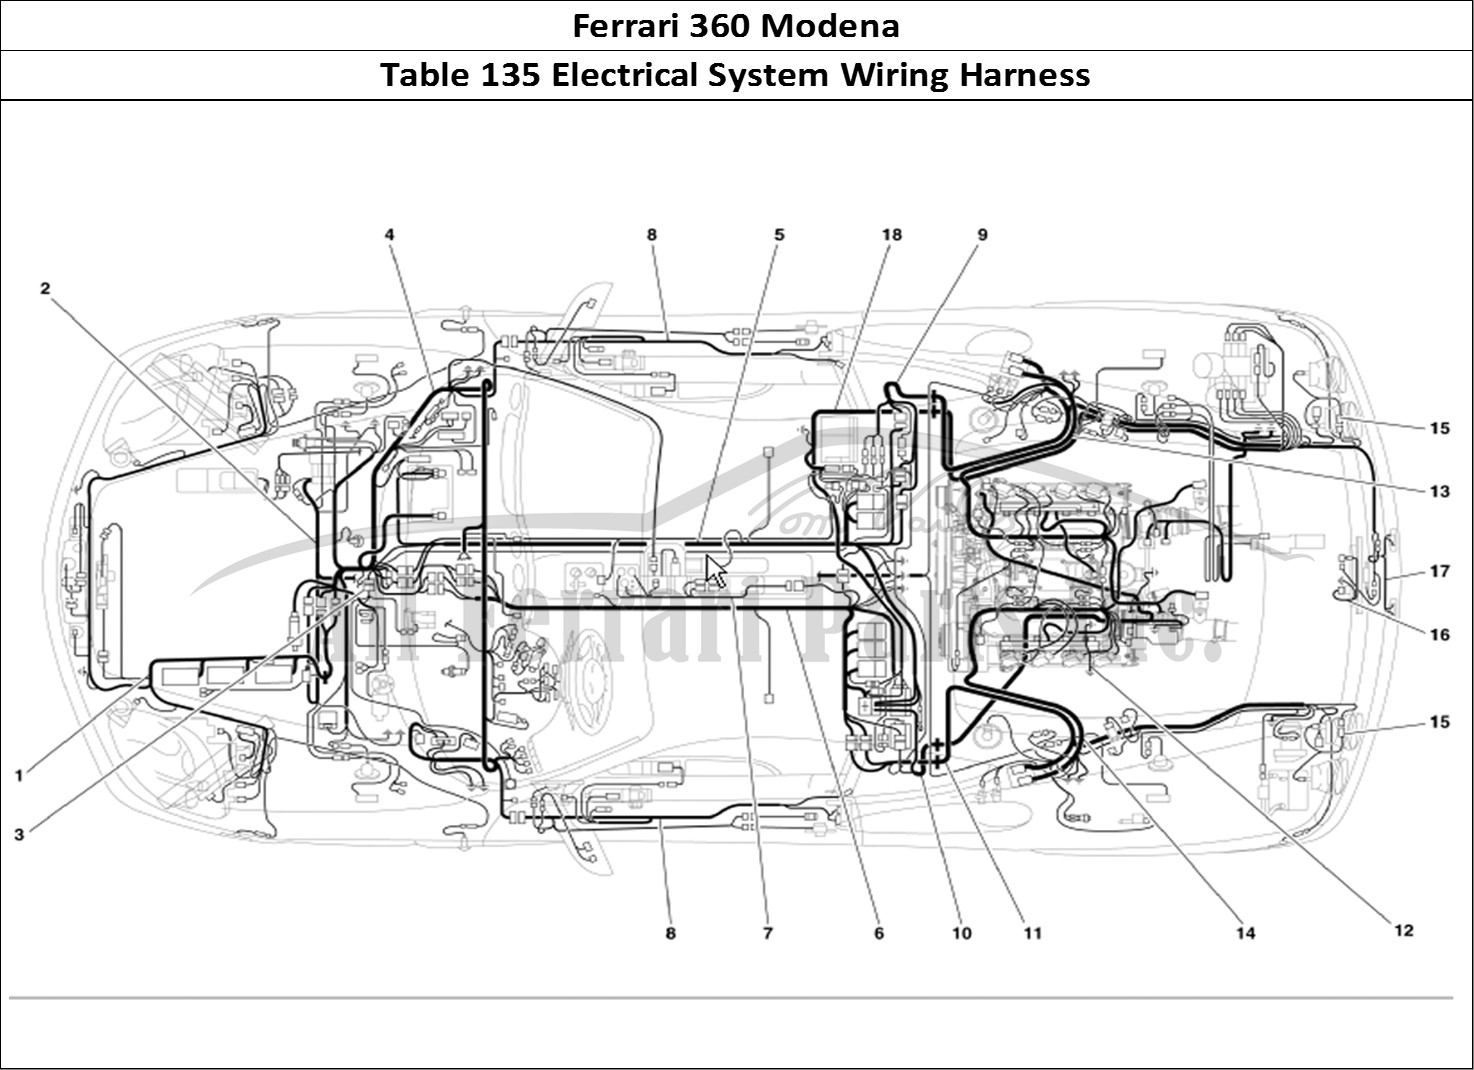 Ferrari modena bodywork table electrical system